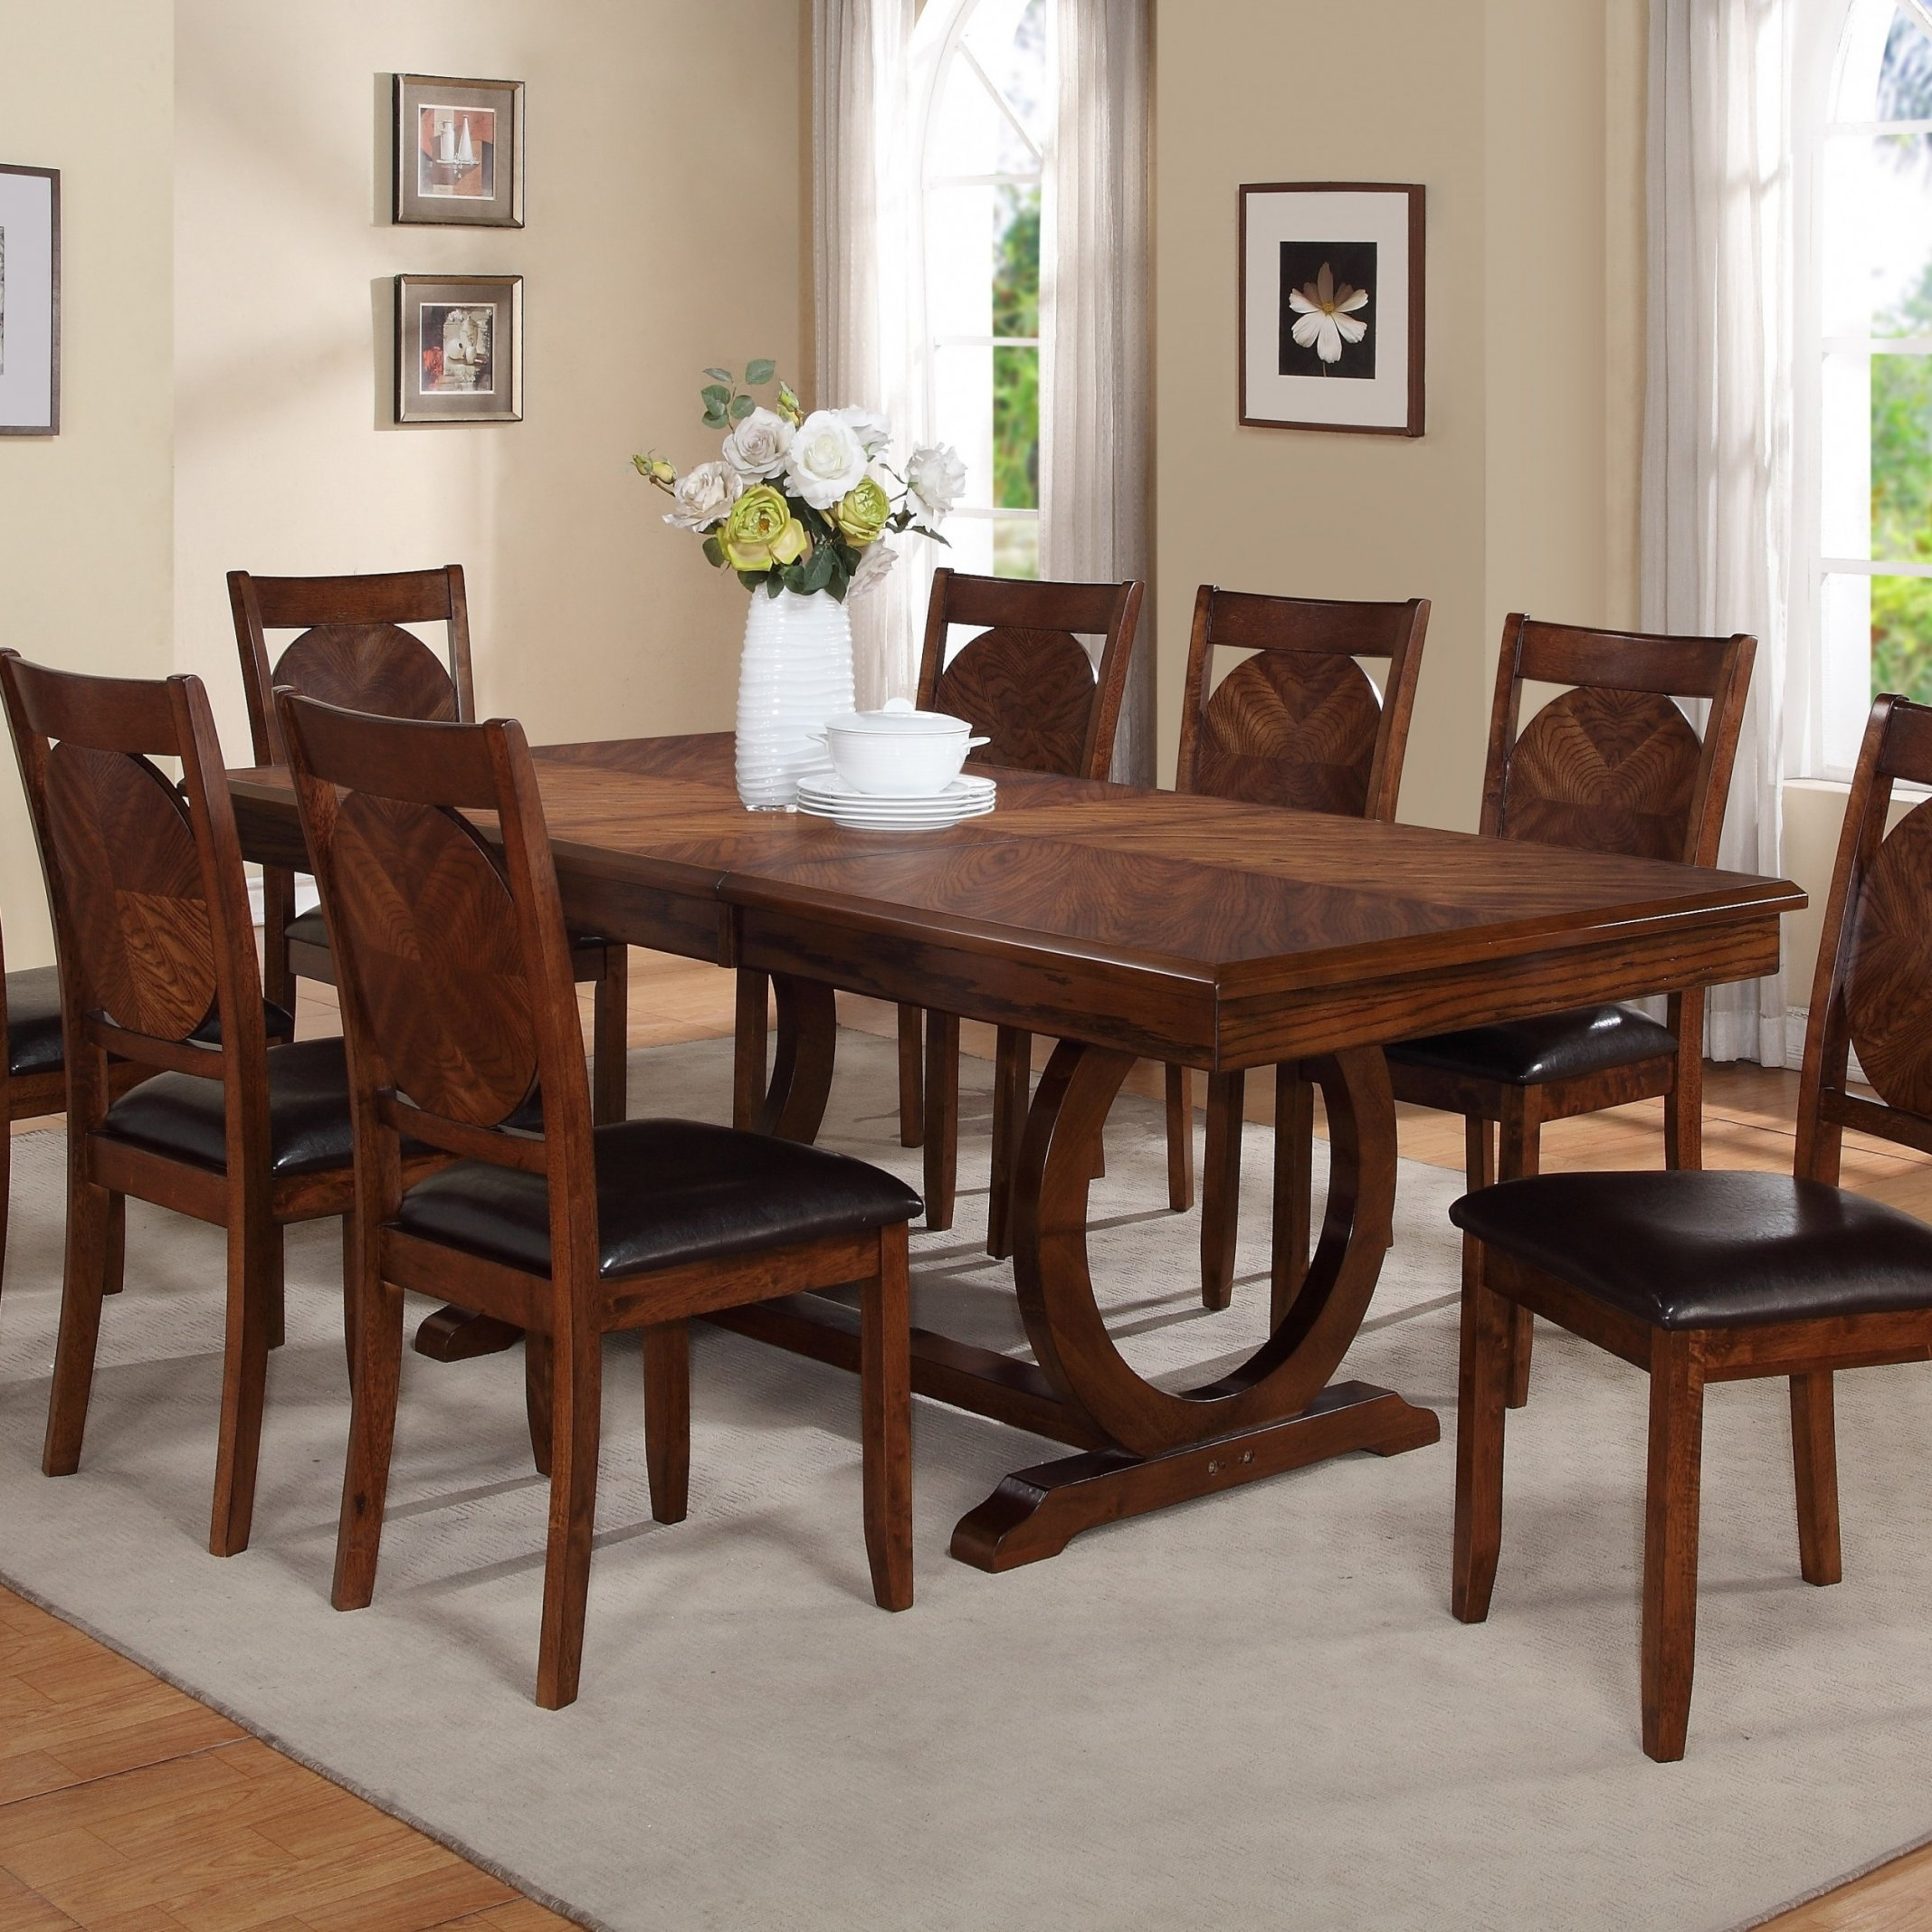 Well Known 8 Seater Black Dining Tables Intended For 8 Seater Dining Table Set Particularly Simple House Wall Decor (View 24 of 25)